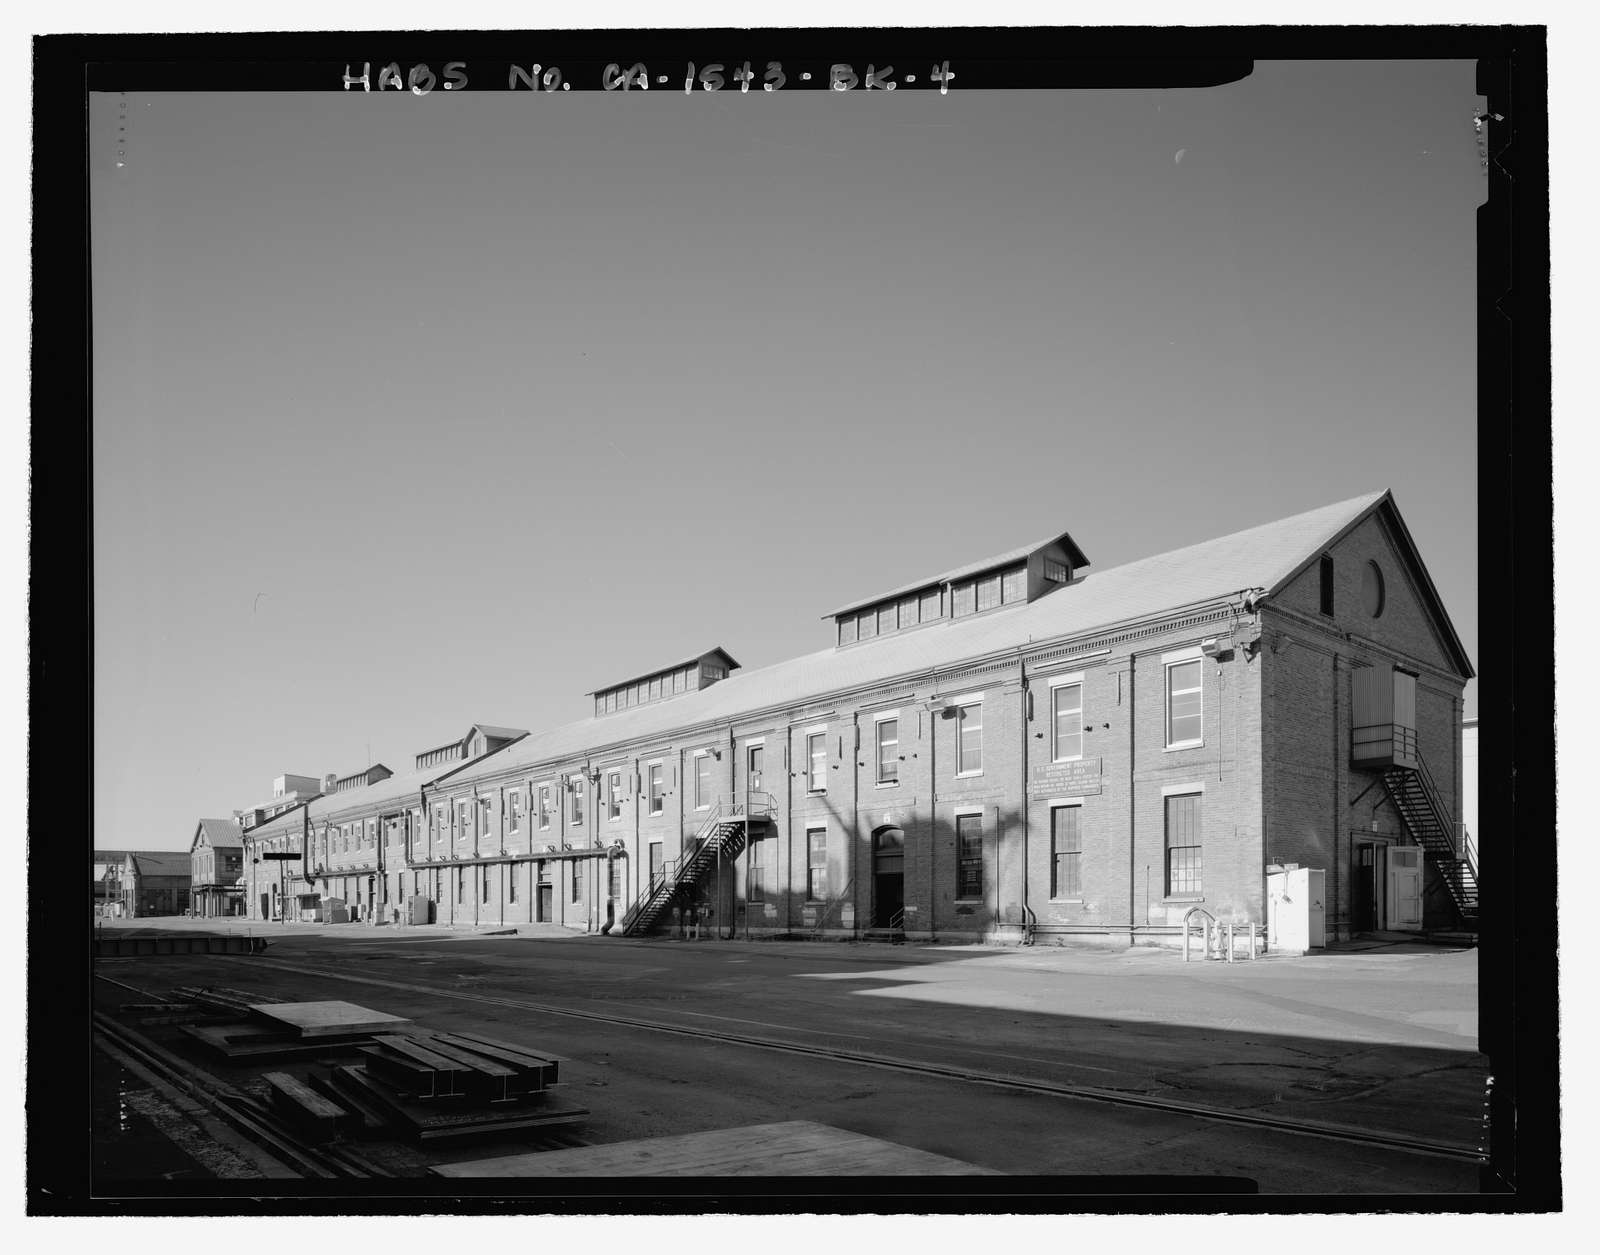 Mare Island Naval Shipyard, Equipment & Recruitment Storehouse, Waterfront Avenue, northwest corner of Waterfront Avenue & Fifth Street, Vallejo, Solano County, CA